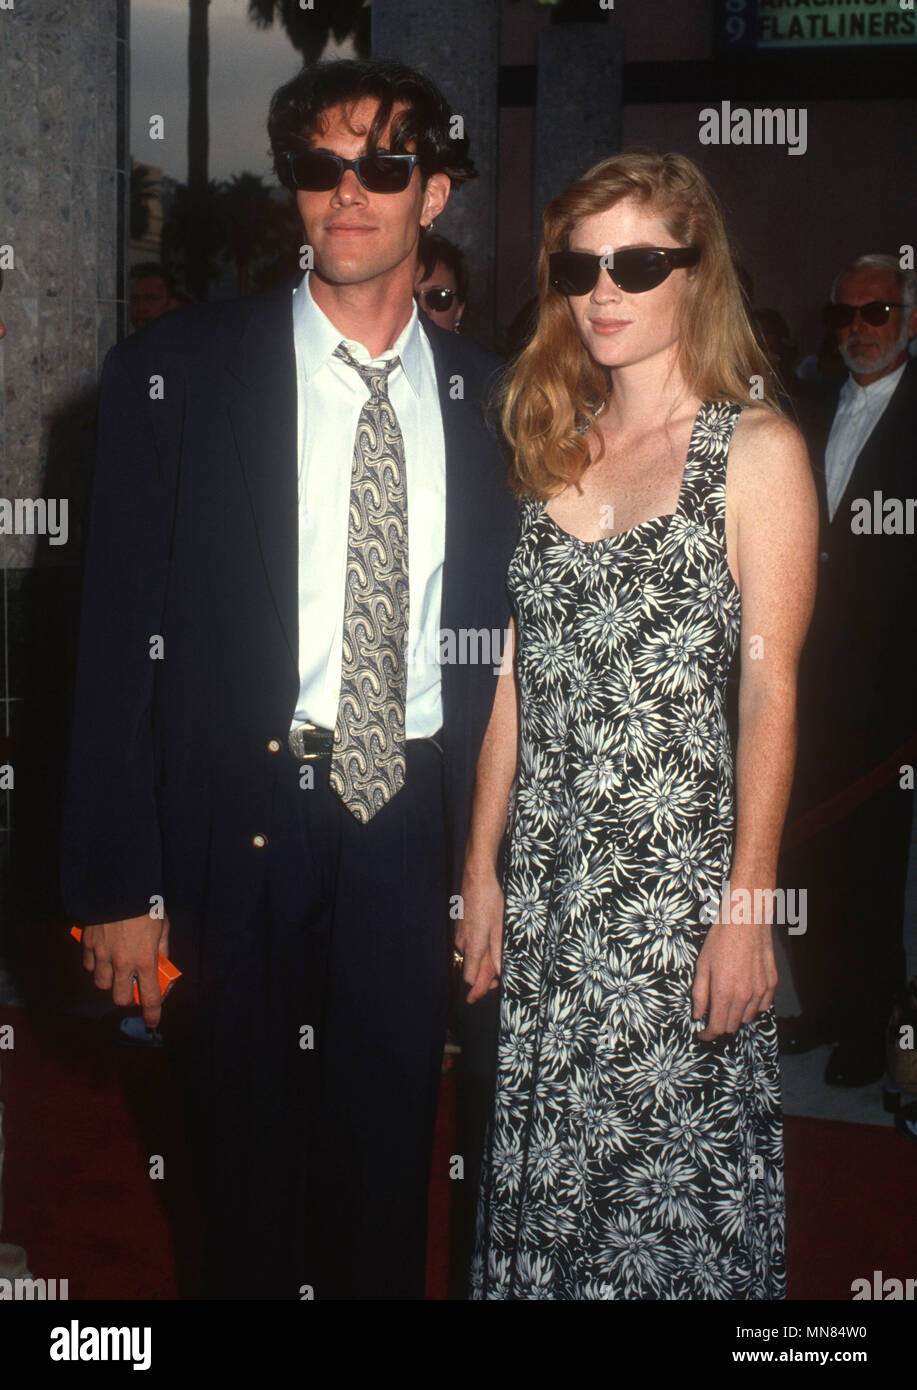 Universal City Ca August 13 L R Actor Dana Ashbrook And Guest Attend The Wild At Heart Universal City Premiere On August 13 1990 At Cineplex Odeon Unversal City Cinemas In Universal Dana ashbrook can be seen using the following weapons in the following films and television series. https www alamy com universal city ca august 13 l r actor dana ashbrook and guest attend the wild at heart universal city premiere on august 13 1990 at cineplex odeon unversal city cinemas in universal city california photo by barry kingalamy stock photo image185190908 html